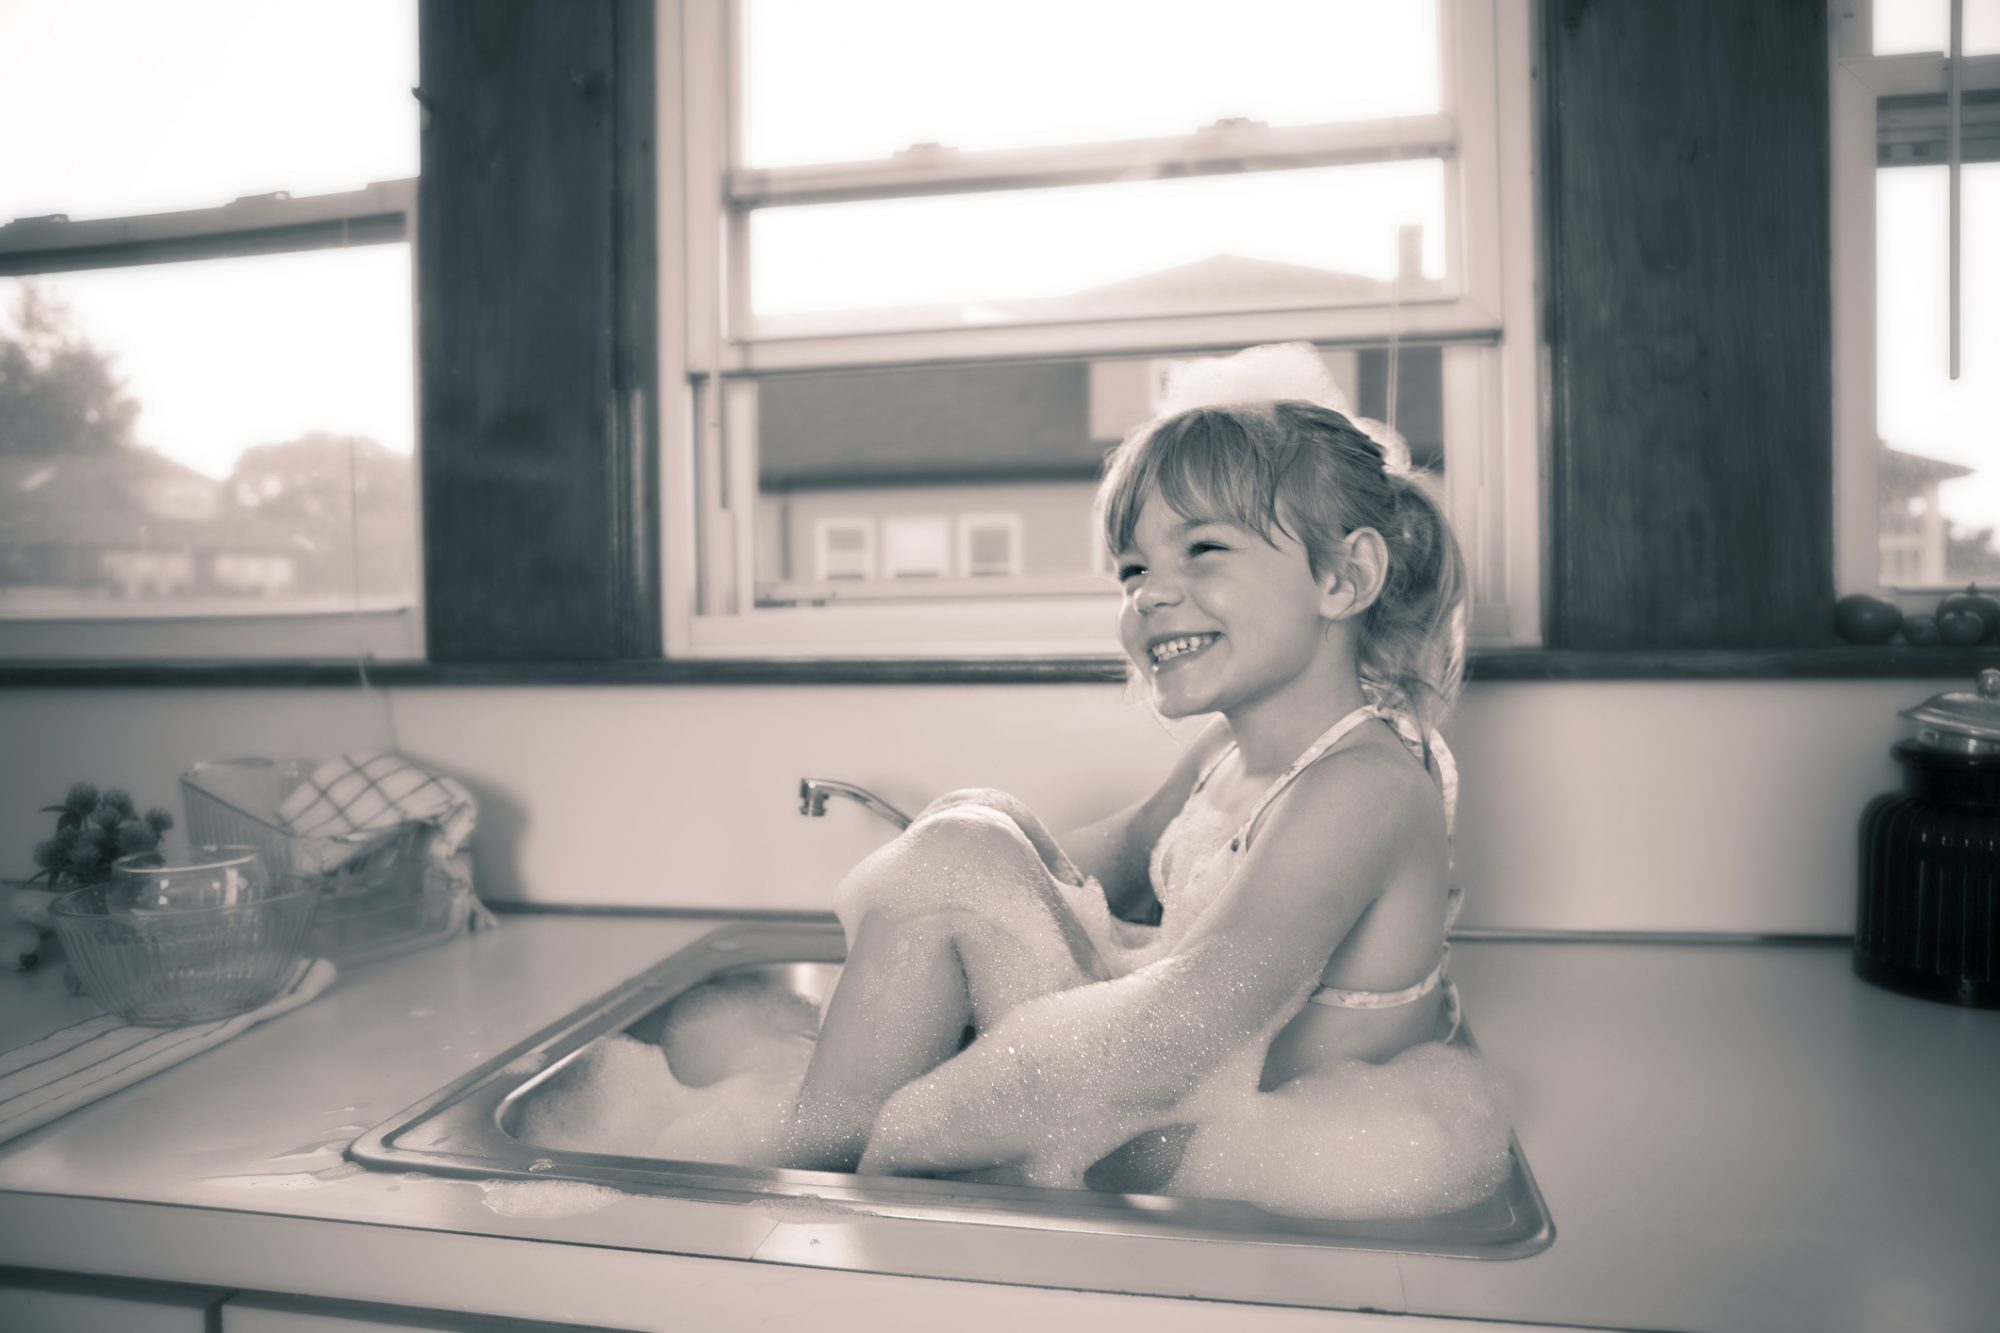 Girl in Sink Tub Vintage